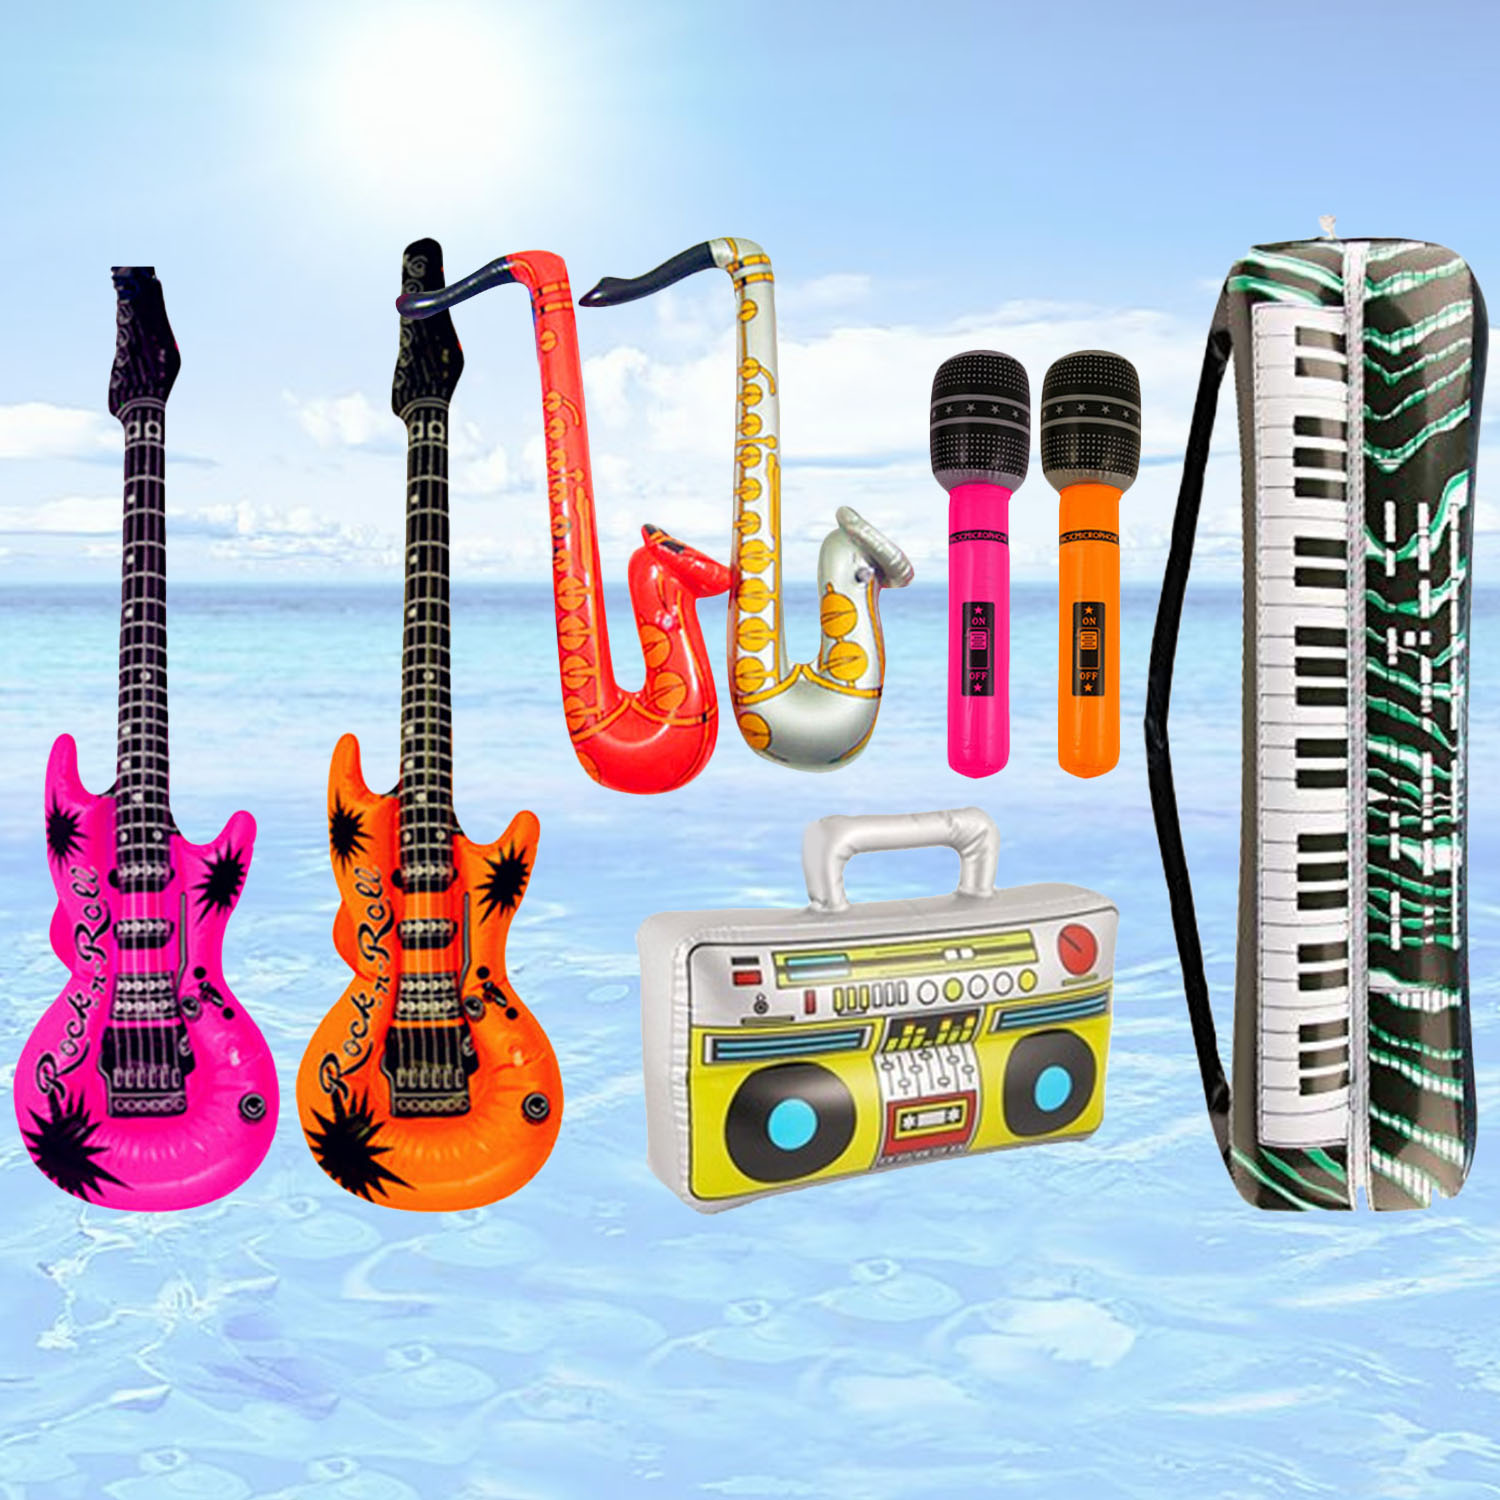 8cps Inflatables Guitar Saxophone Microphone Balloons Musical Instruments Toy Accessories For Swimming Pool Party Supplies Decor